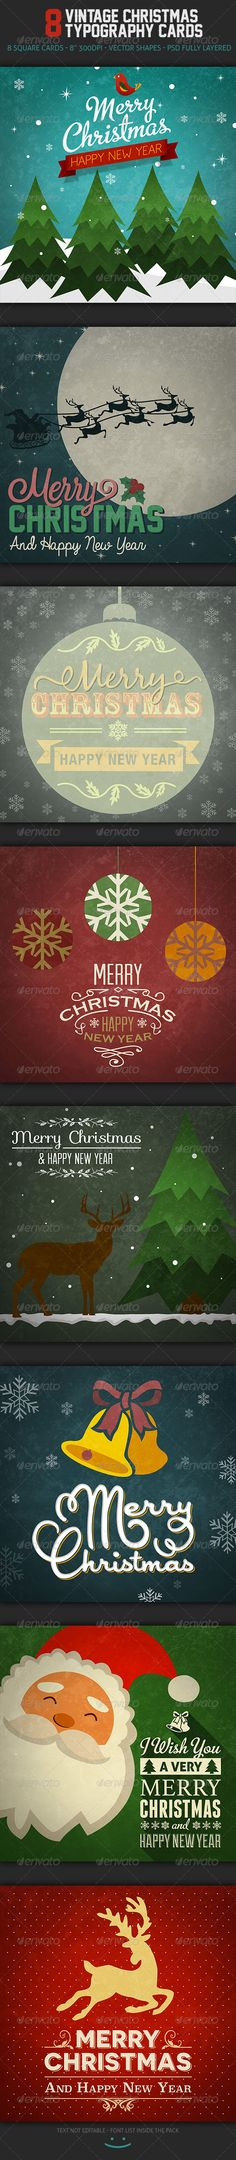 Vintage Christmas Typography Cards - Miscellaneous Backgrounds